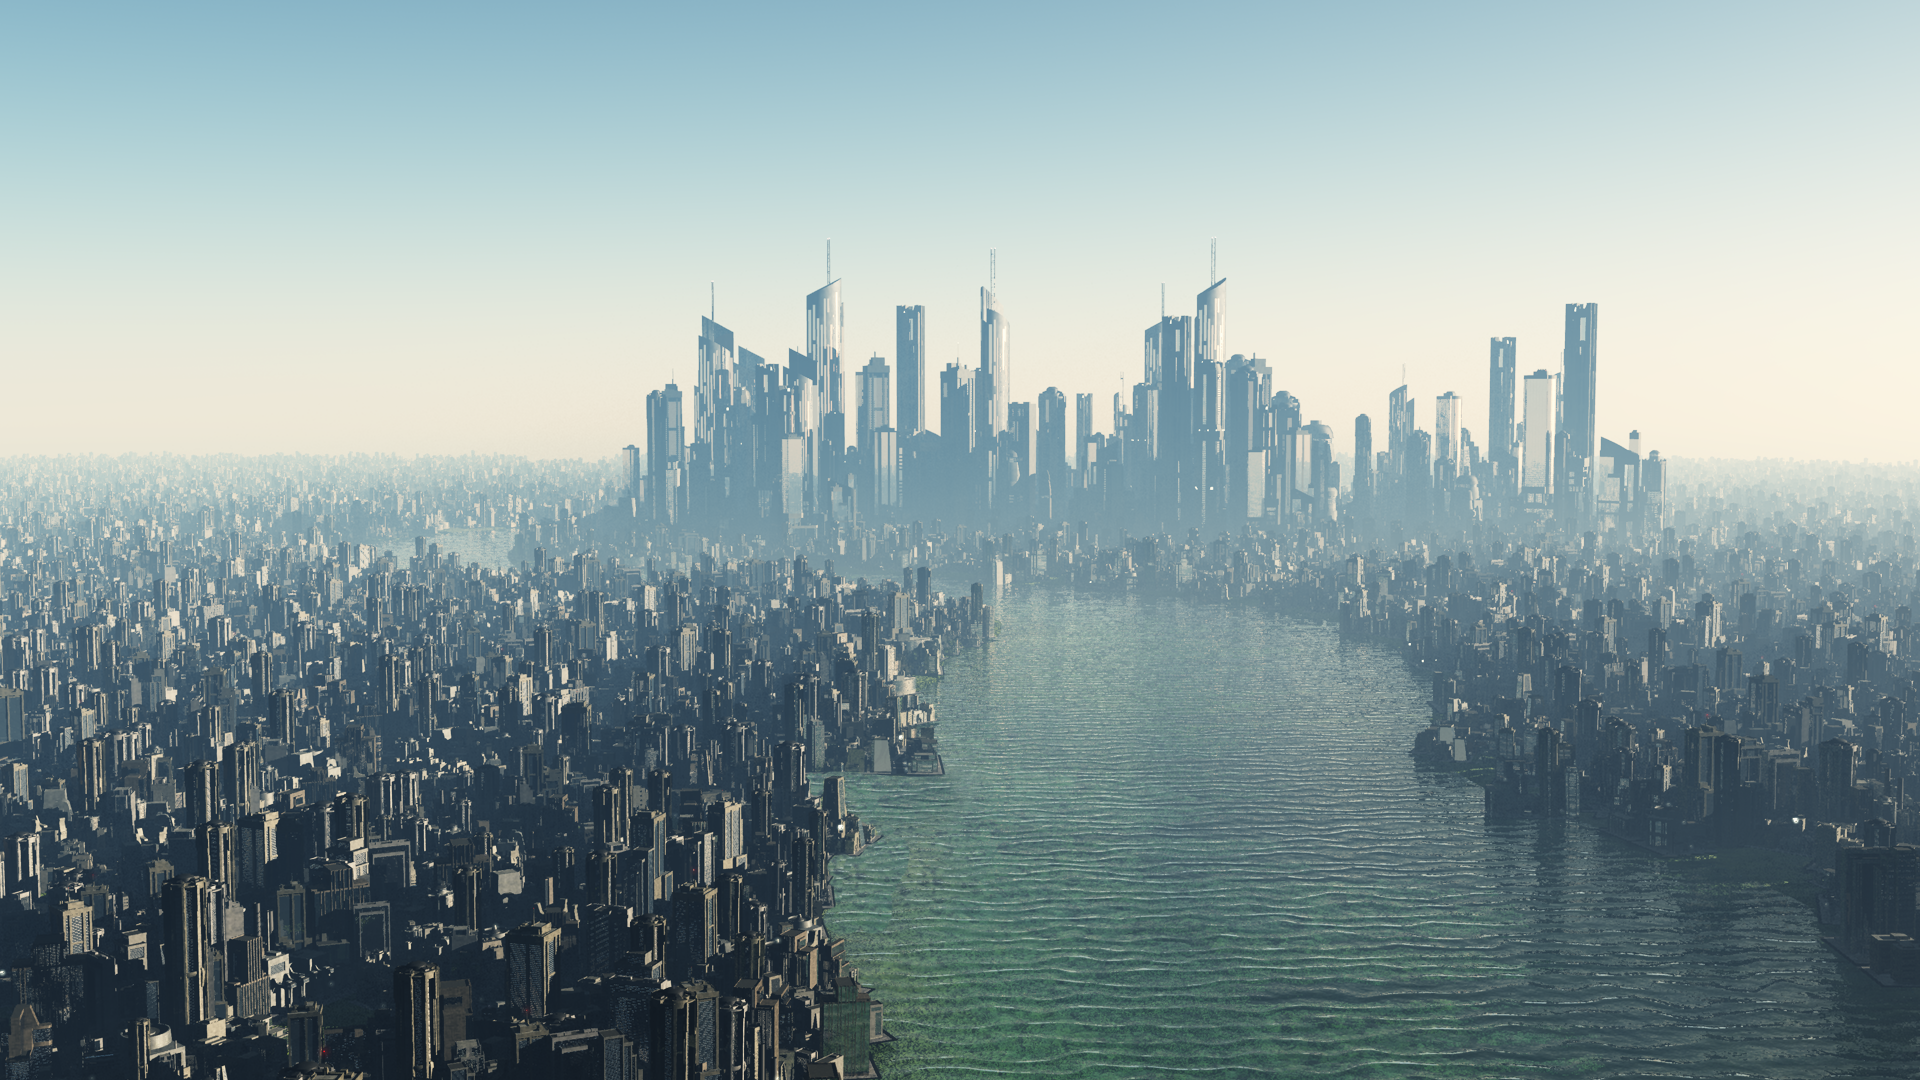 Big City by GiulioDesign94